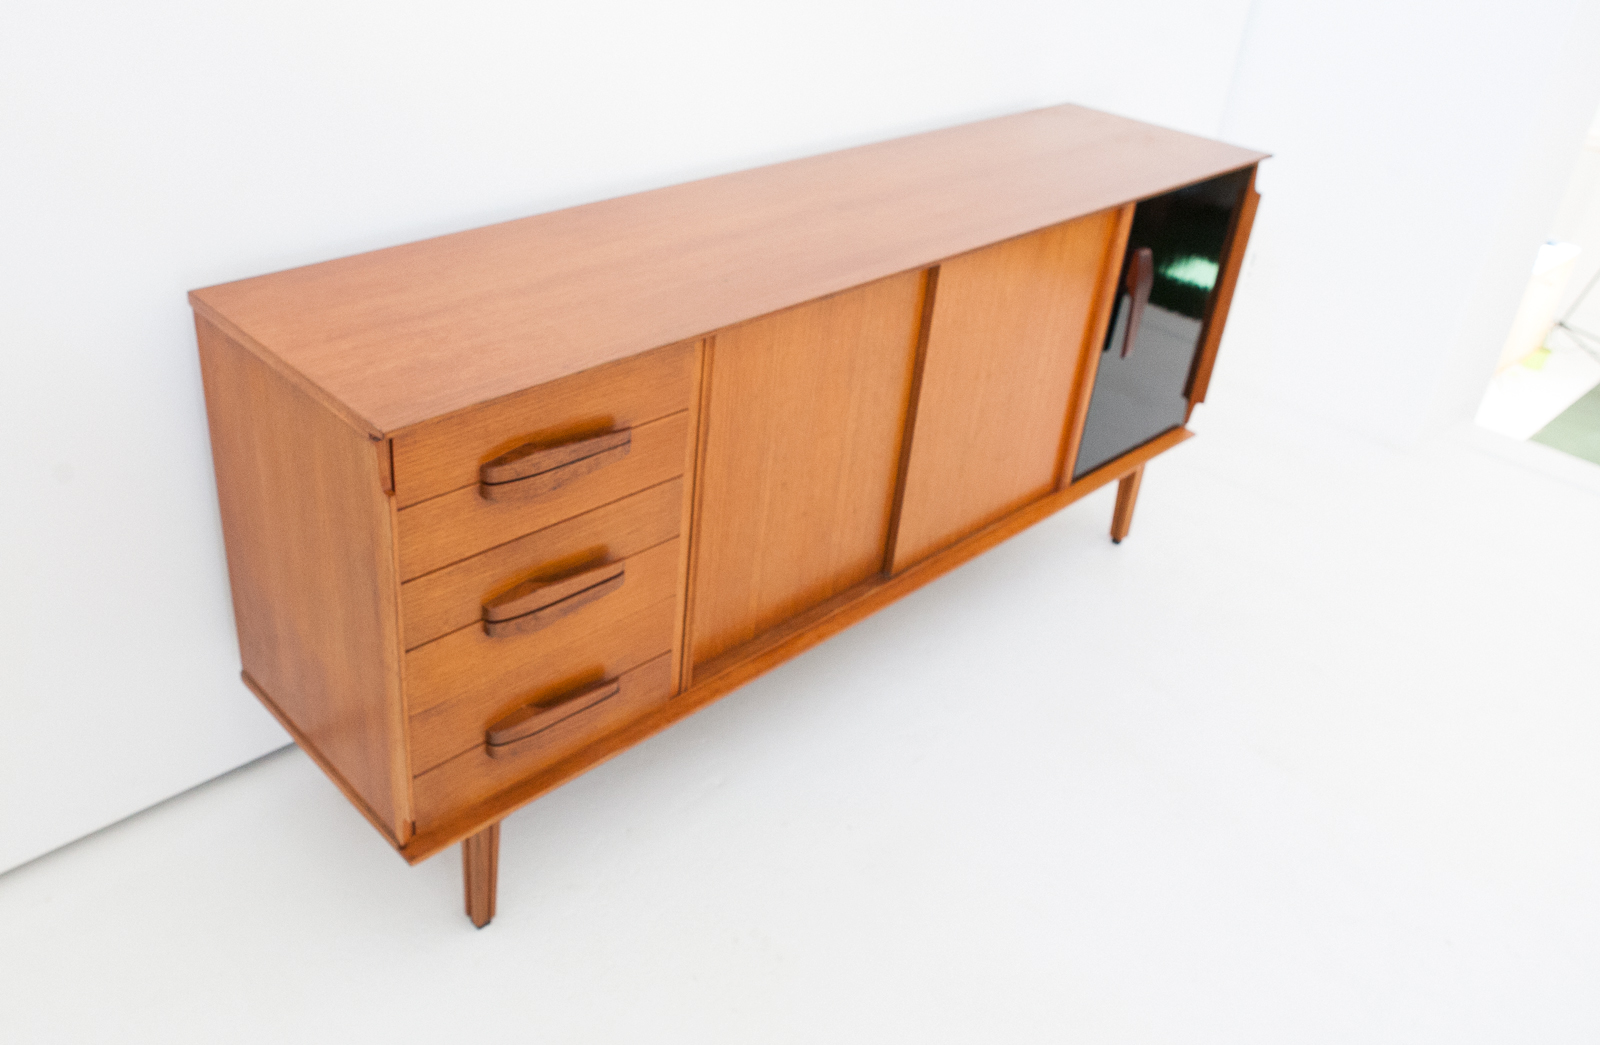 Sideboard 85 1 retro4m for Sideboard tess 05